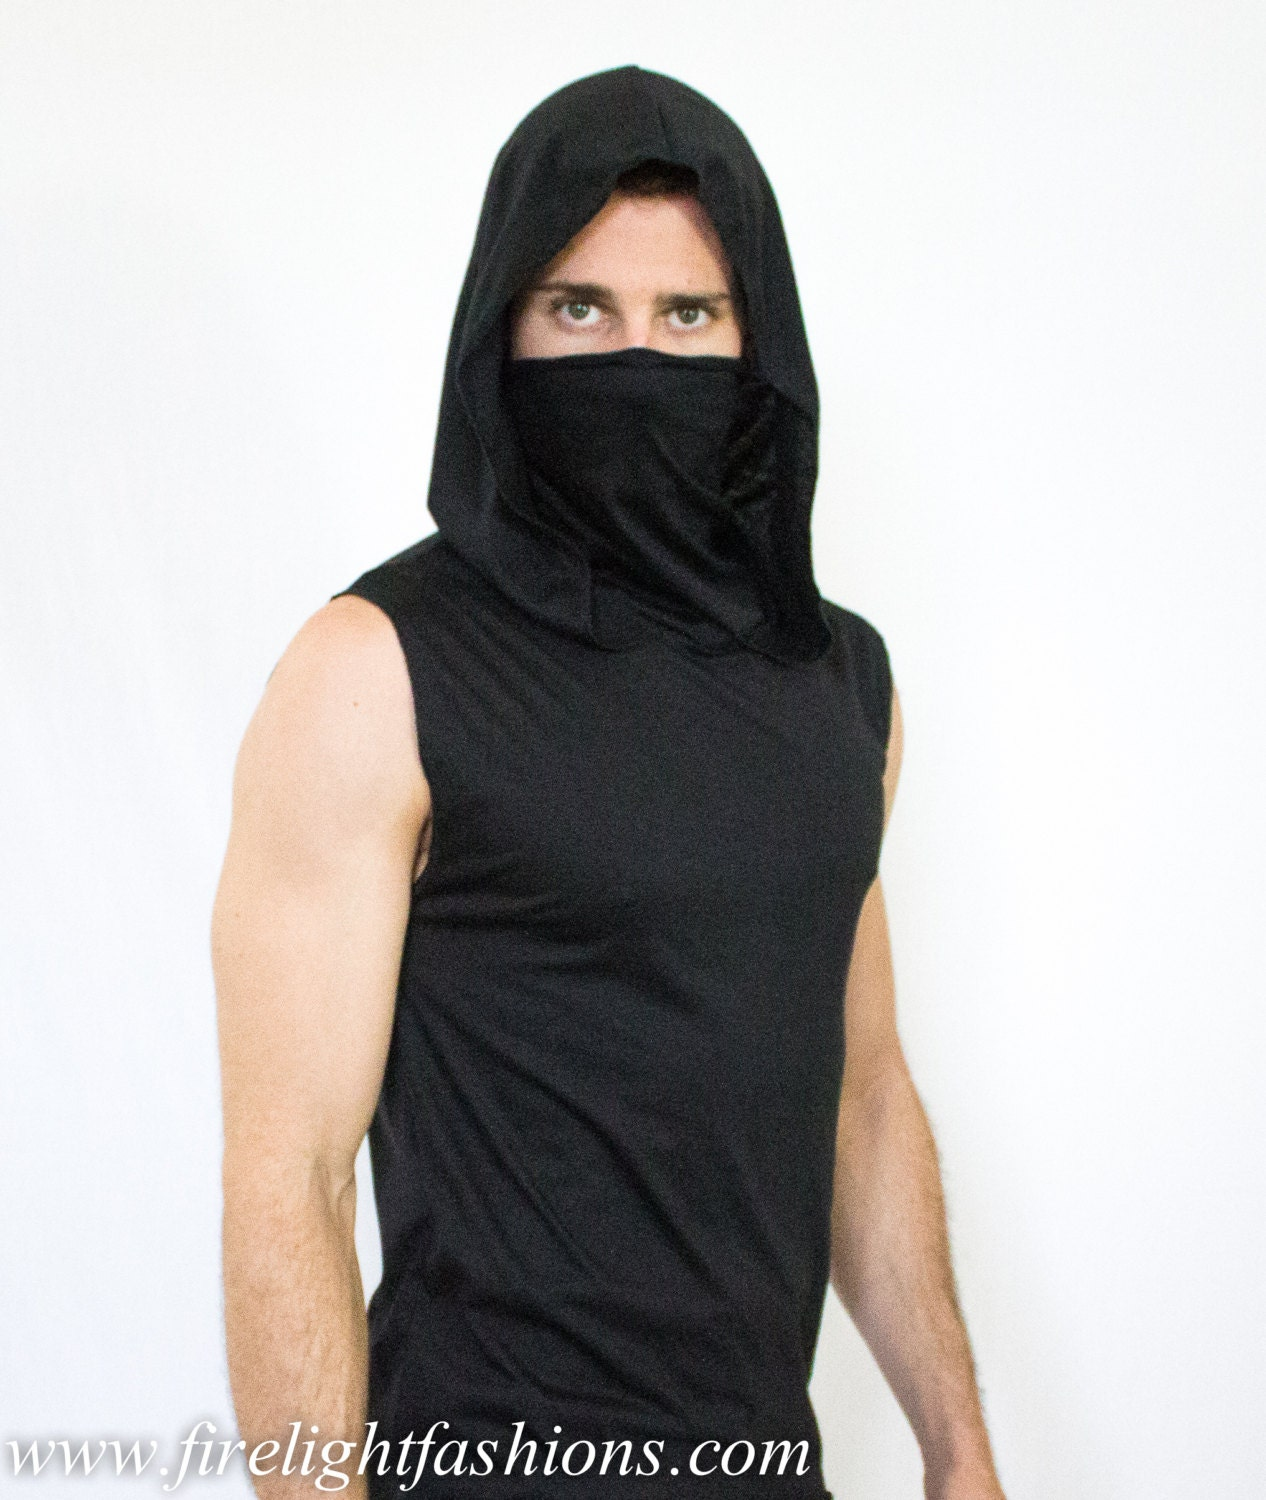 Black t shirt ninja mask - Ninja Sleeveless Hoodie Tank Top Assassin Shirt Built In Ninja Mask Mens Scale